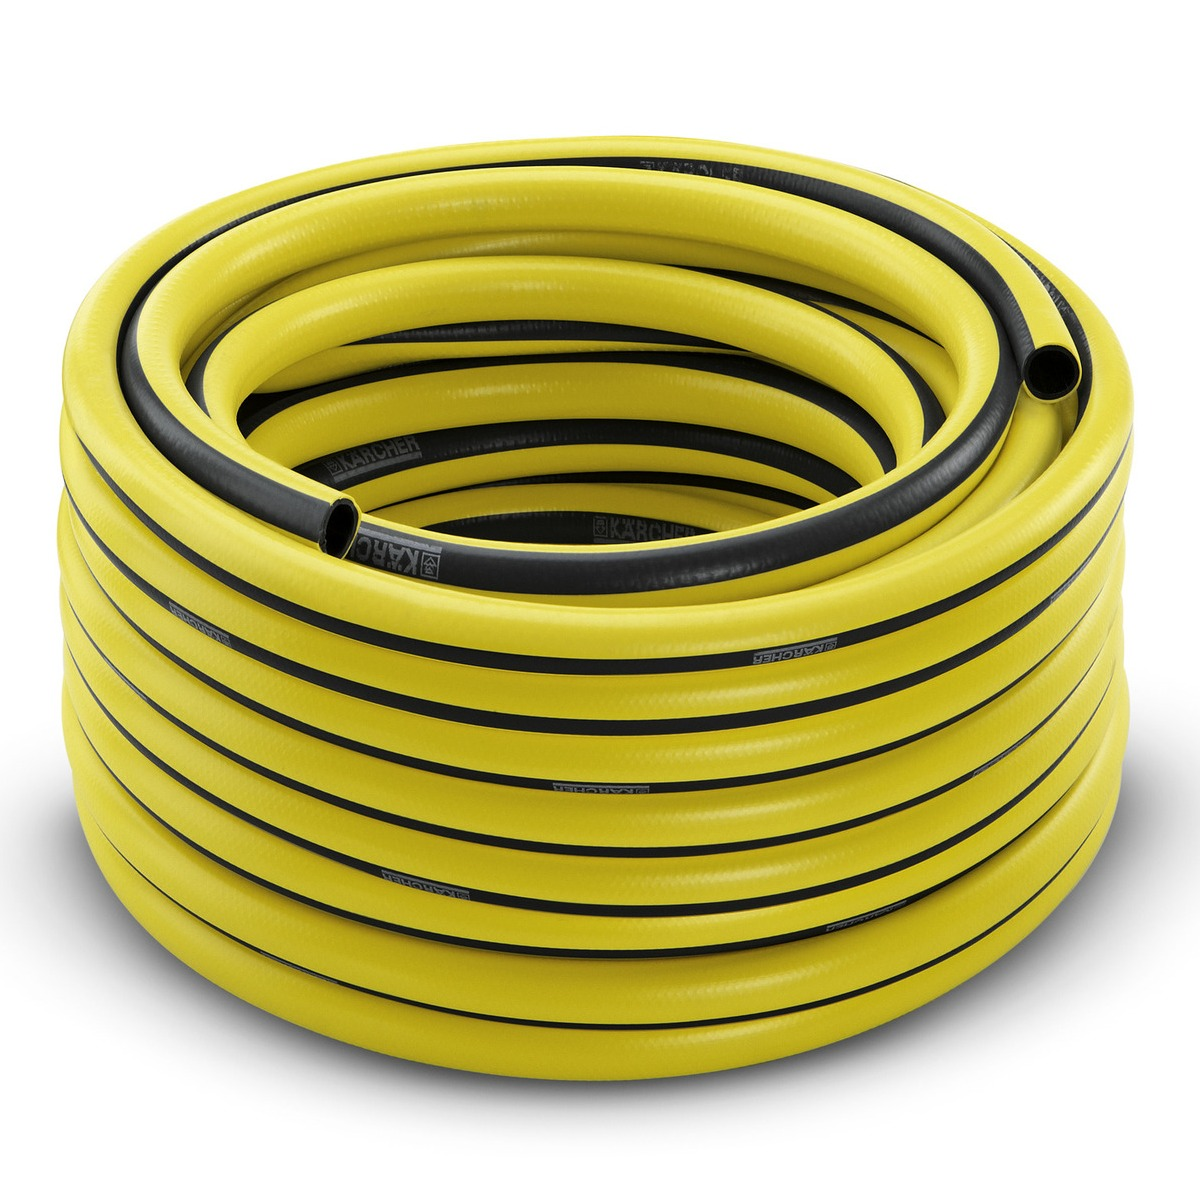 Watering hose KARCHER PrimoFlex 1/2 (2.645-139) (length 50 m diameter 13mm/1/2 inch, resistant to перегибу, FW стоимость